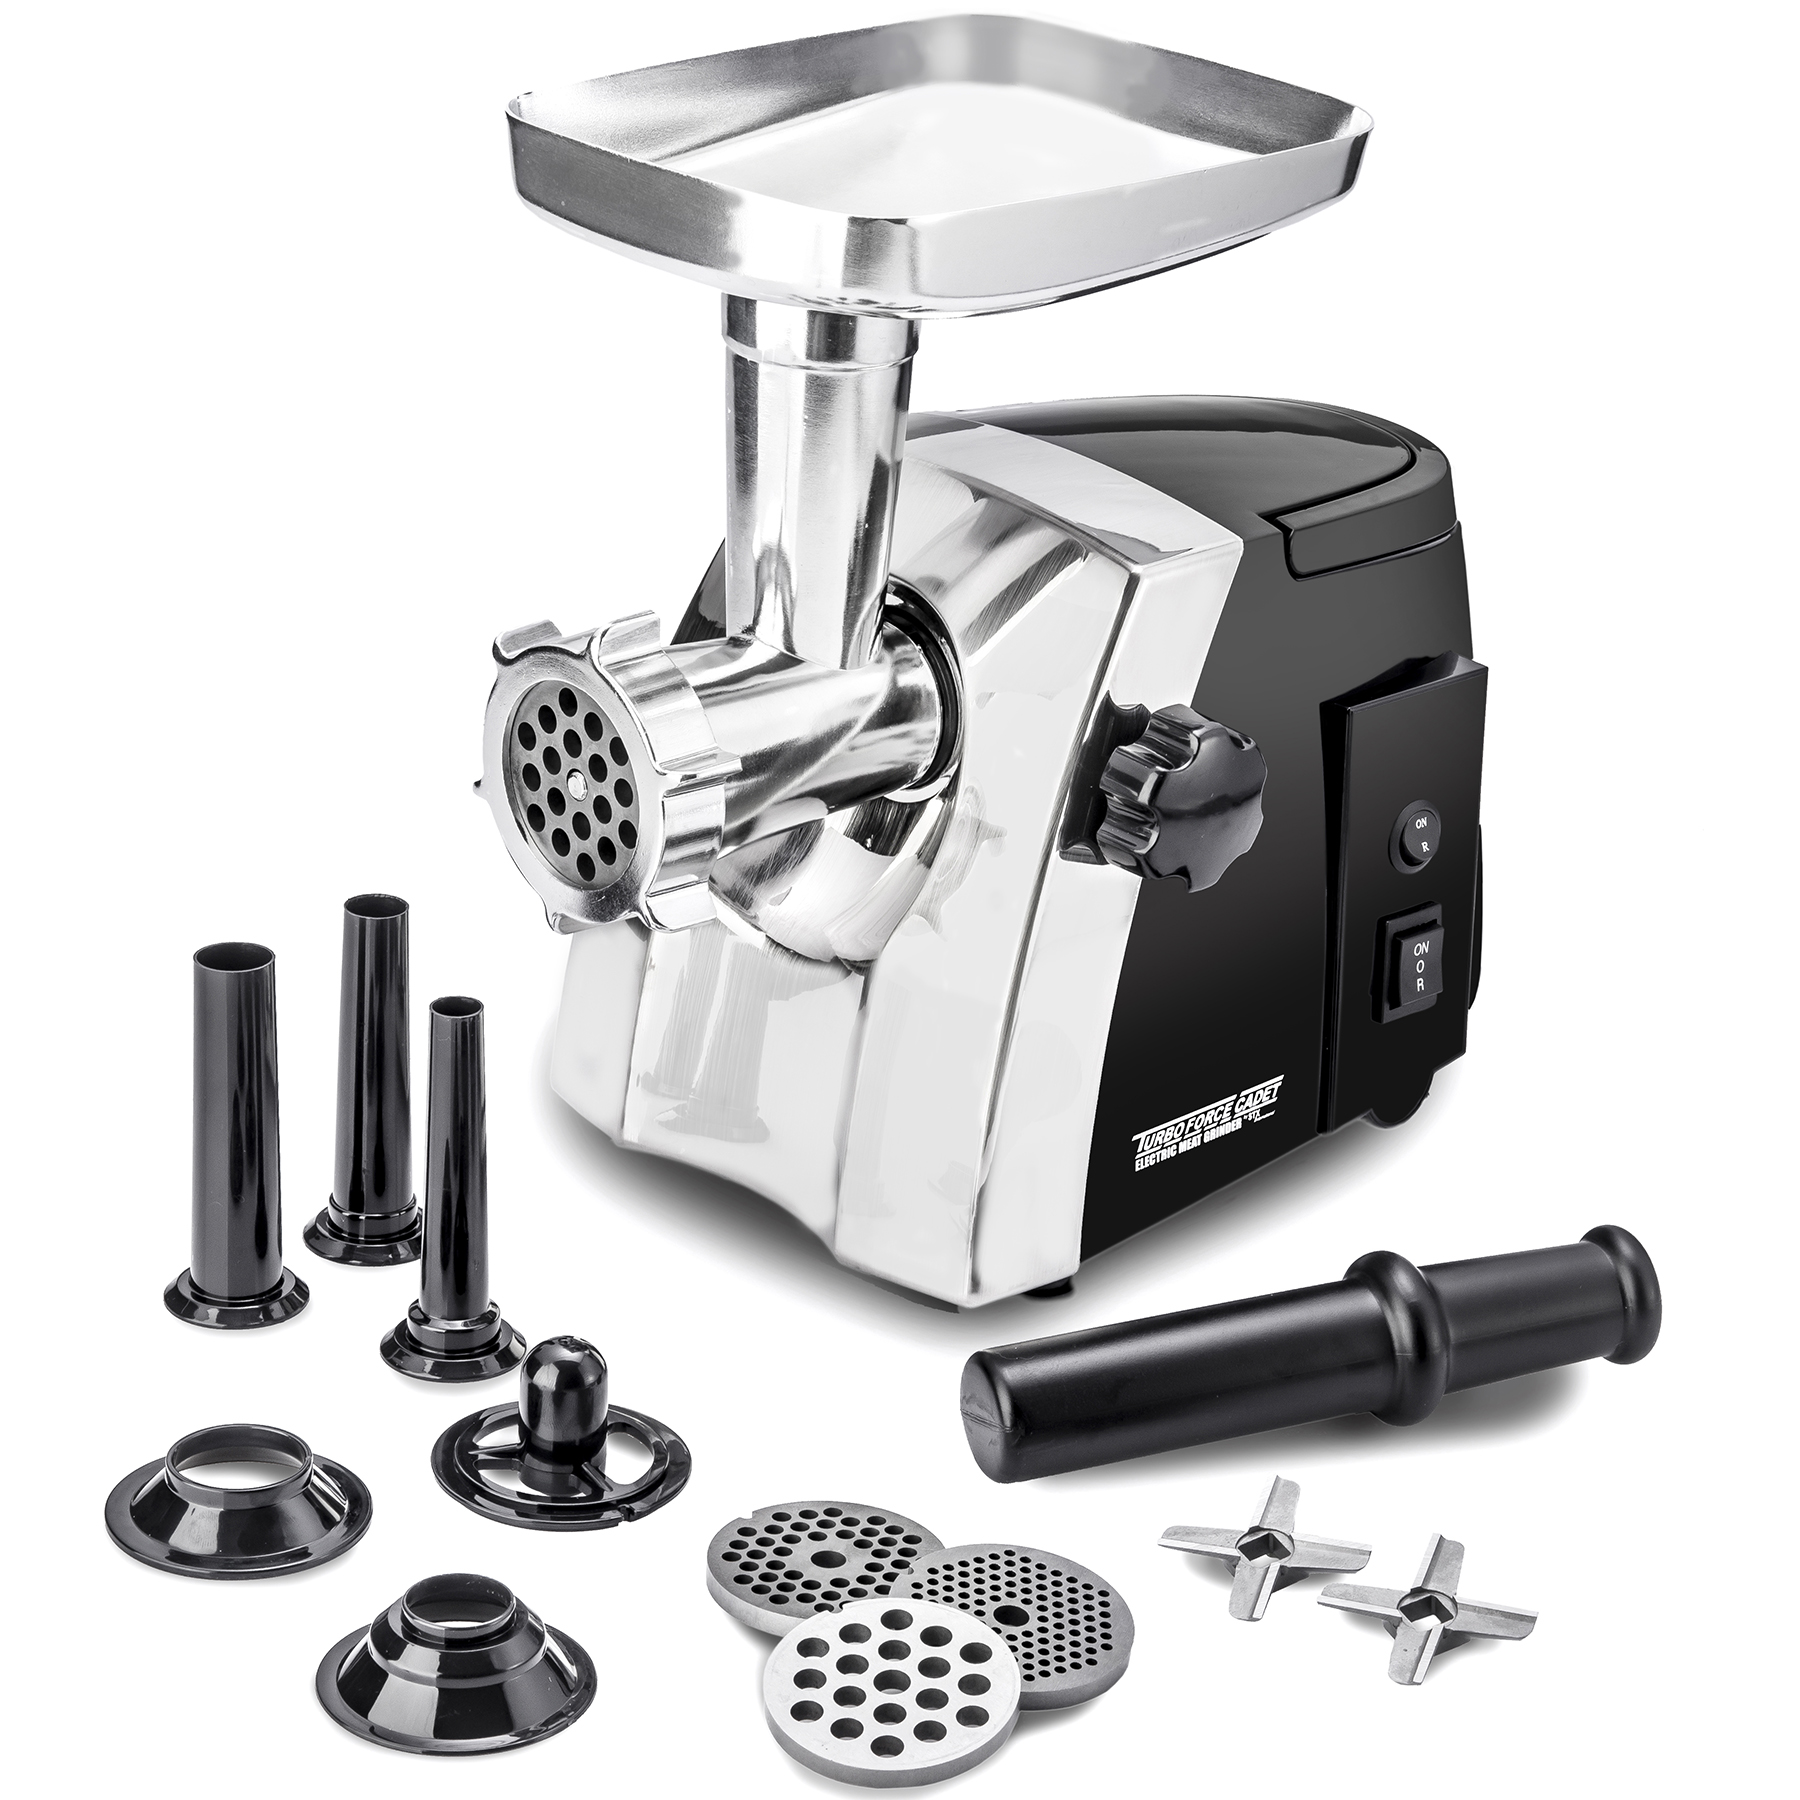 electric meat grinder  size #8 - model stx-1200-tfc  stx international turboforce cadet  hideaway handle  3 grinding plates  3 cutting blades  3 sausage stuffing tubes  kubbe attachment